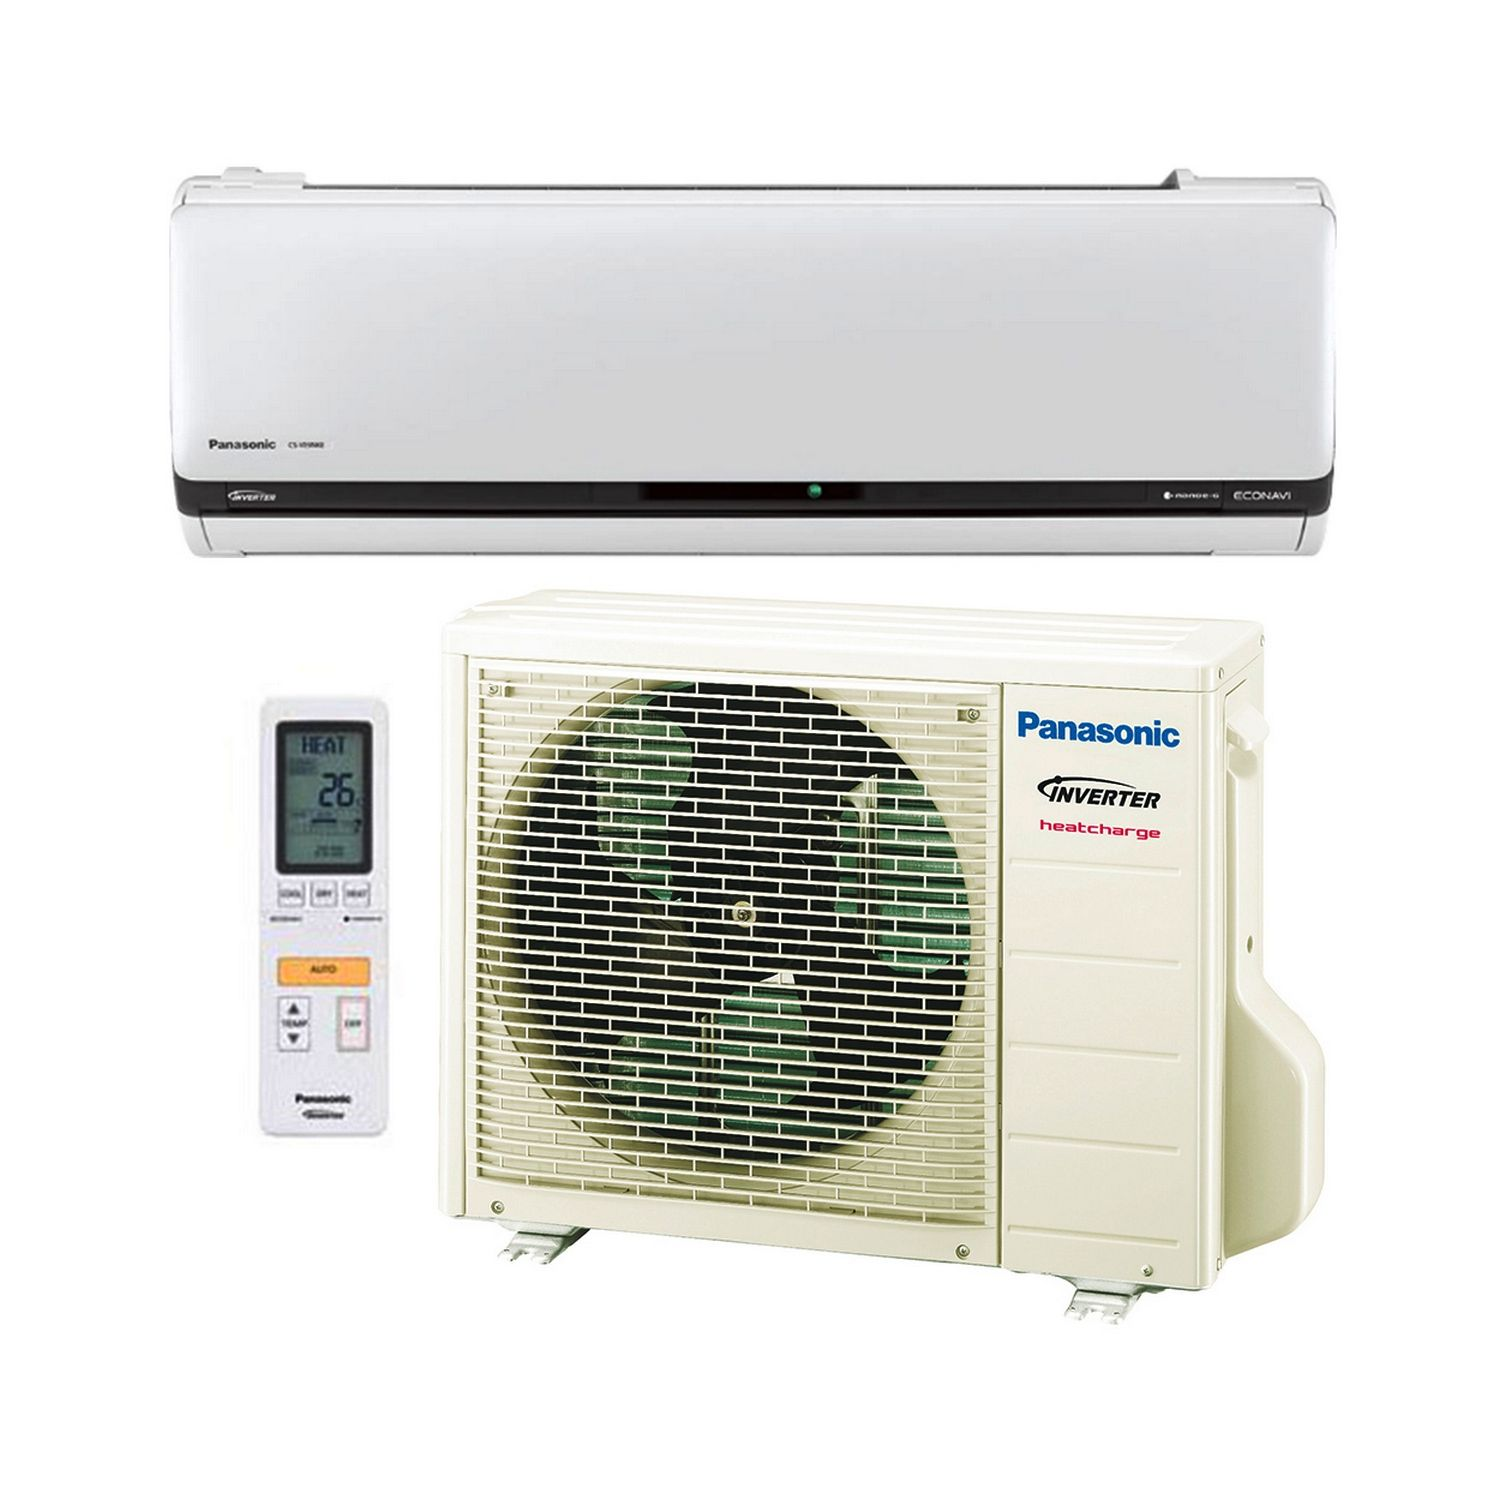 The Panasonic Strong Air Conditioner Https Www Facebook Com